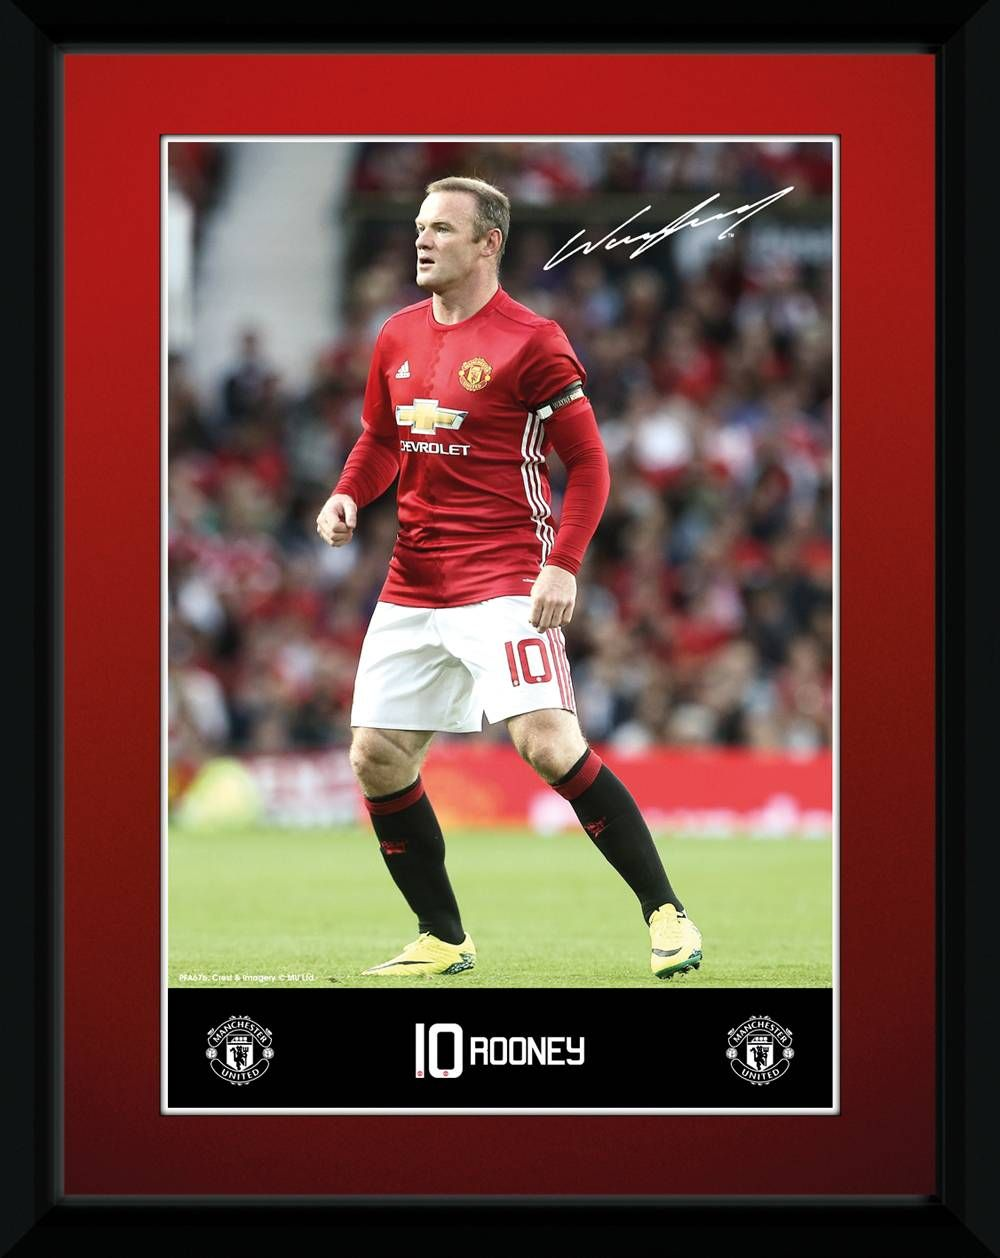 Manchester United Rooney 16 17 Collector Print This Collector Print Features Both England And Manchester United Skipper Wayne Rooney Who Holds The Title As En